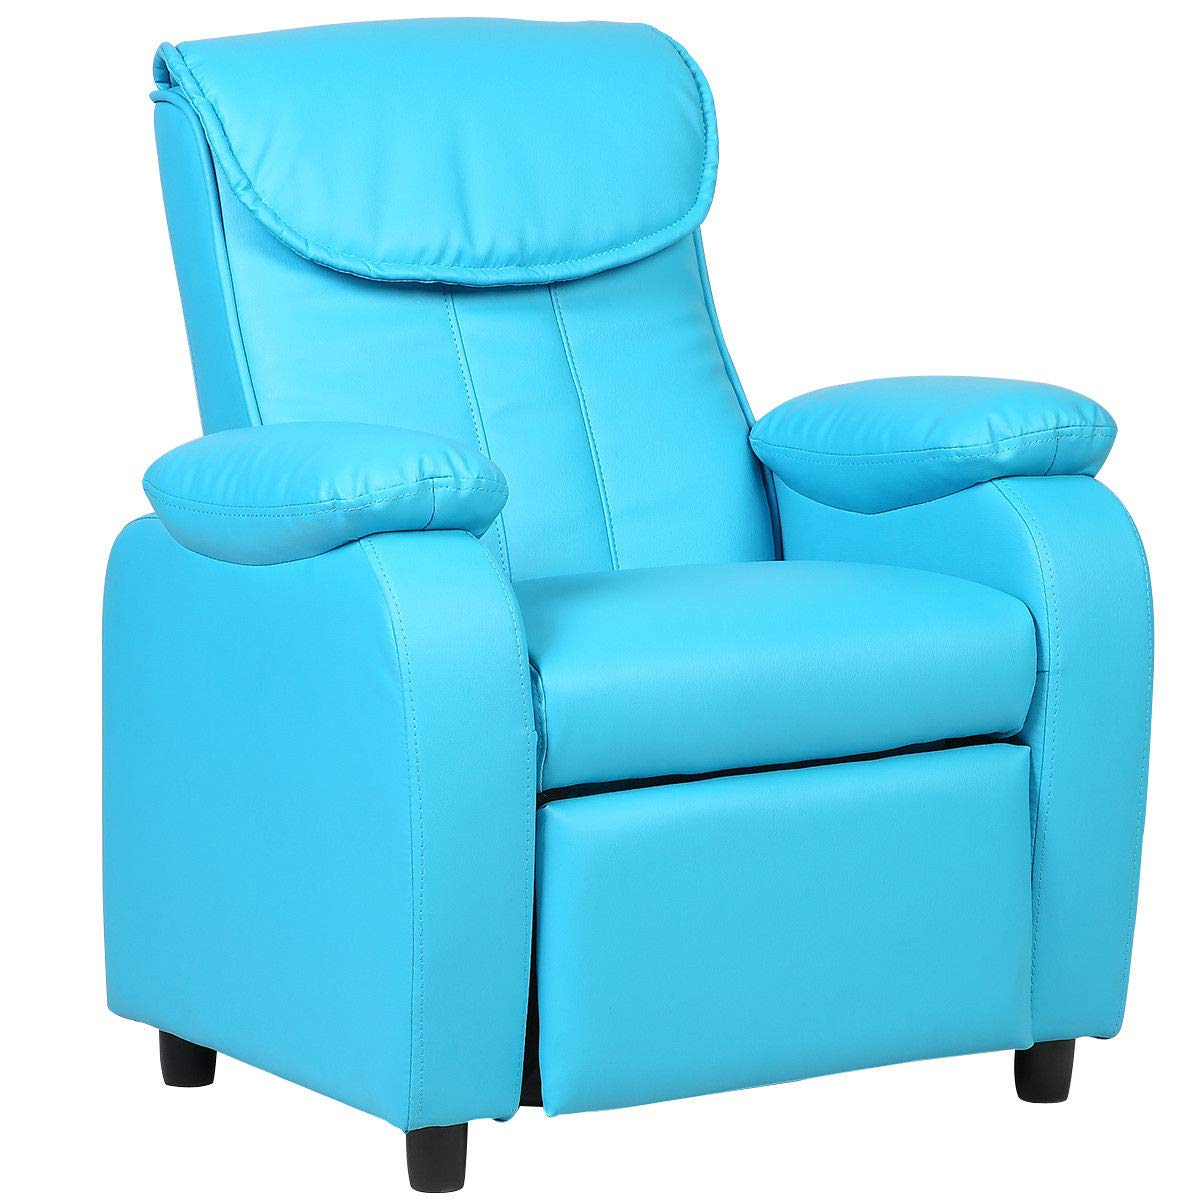 Costzon FWAM-00786 (Blue) Deluxe Children Recliner Sofa Armrest Chair Living Room Bedroom Couch Home Furniture, Small by Costzon